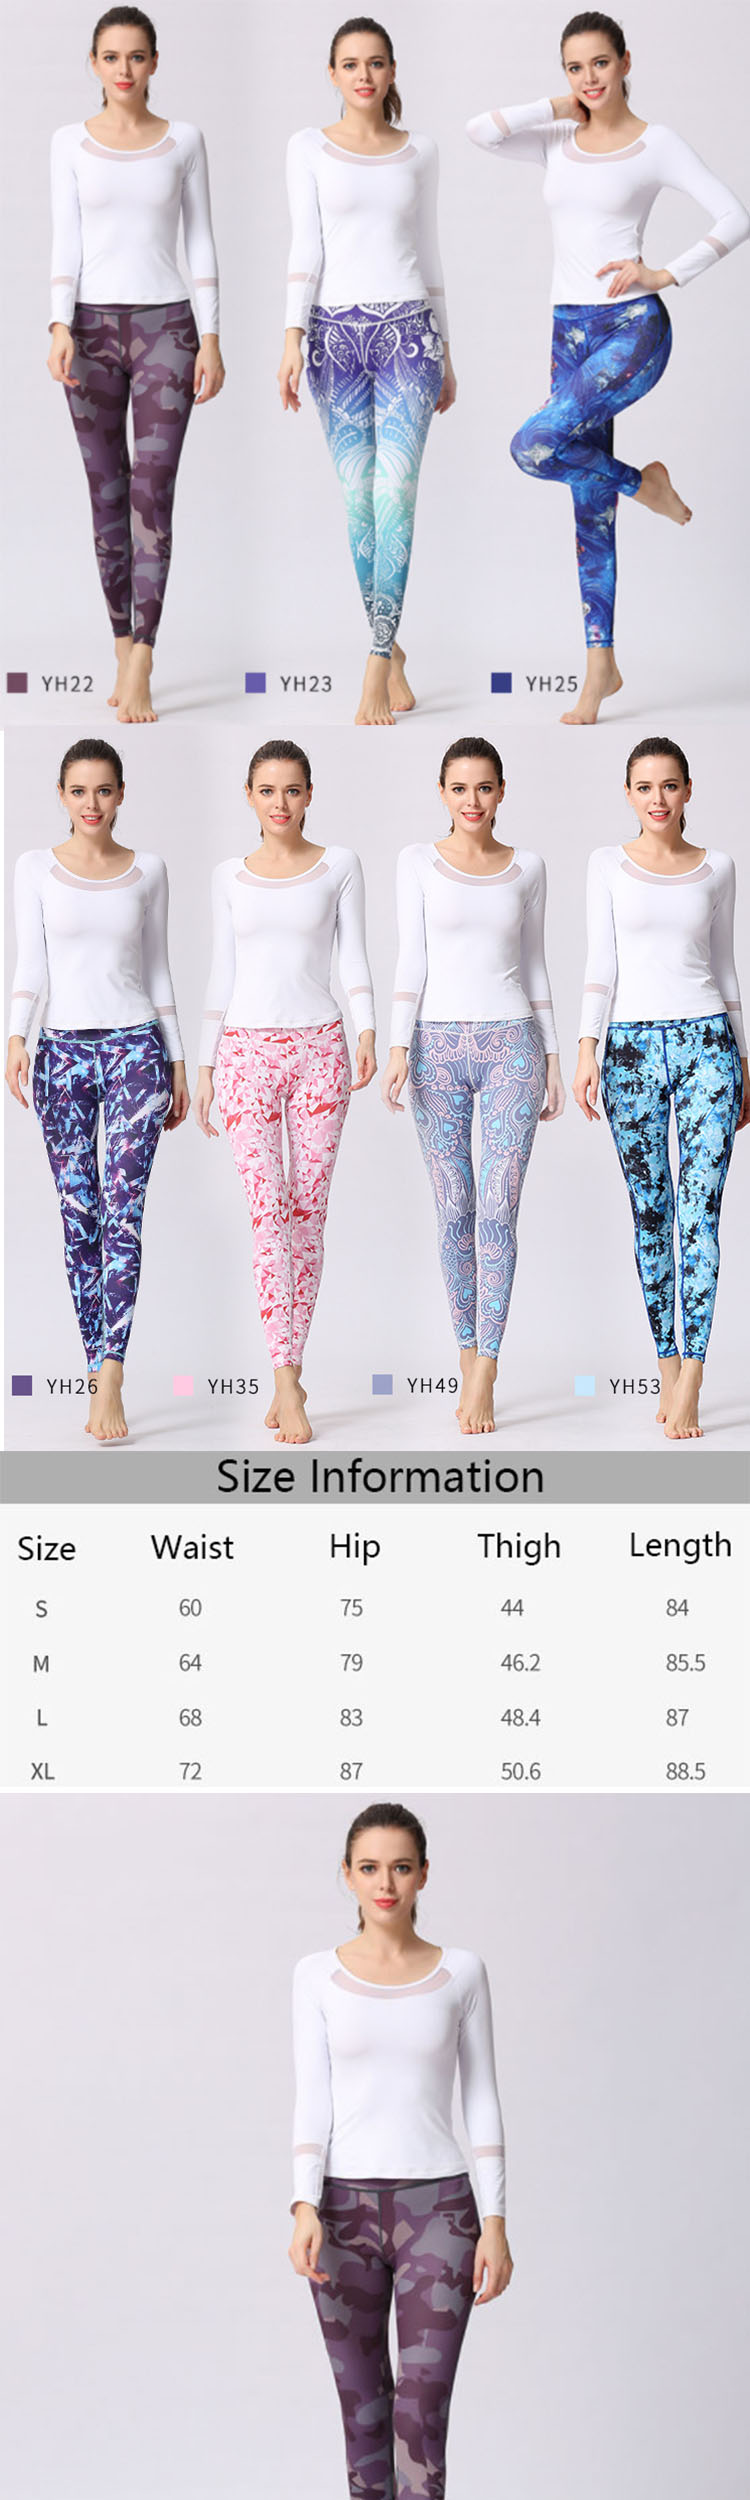 The effect of colourful sports leggings printing on some fabrics is not clear